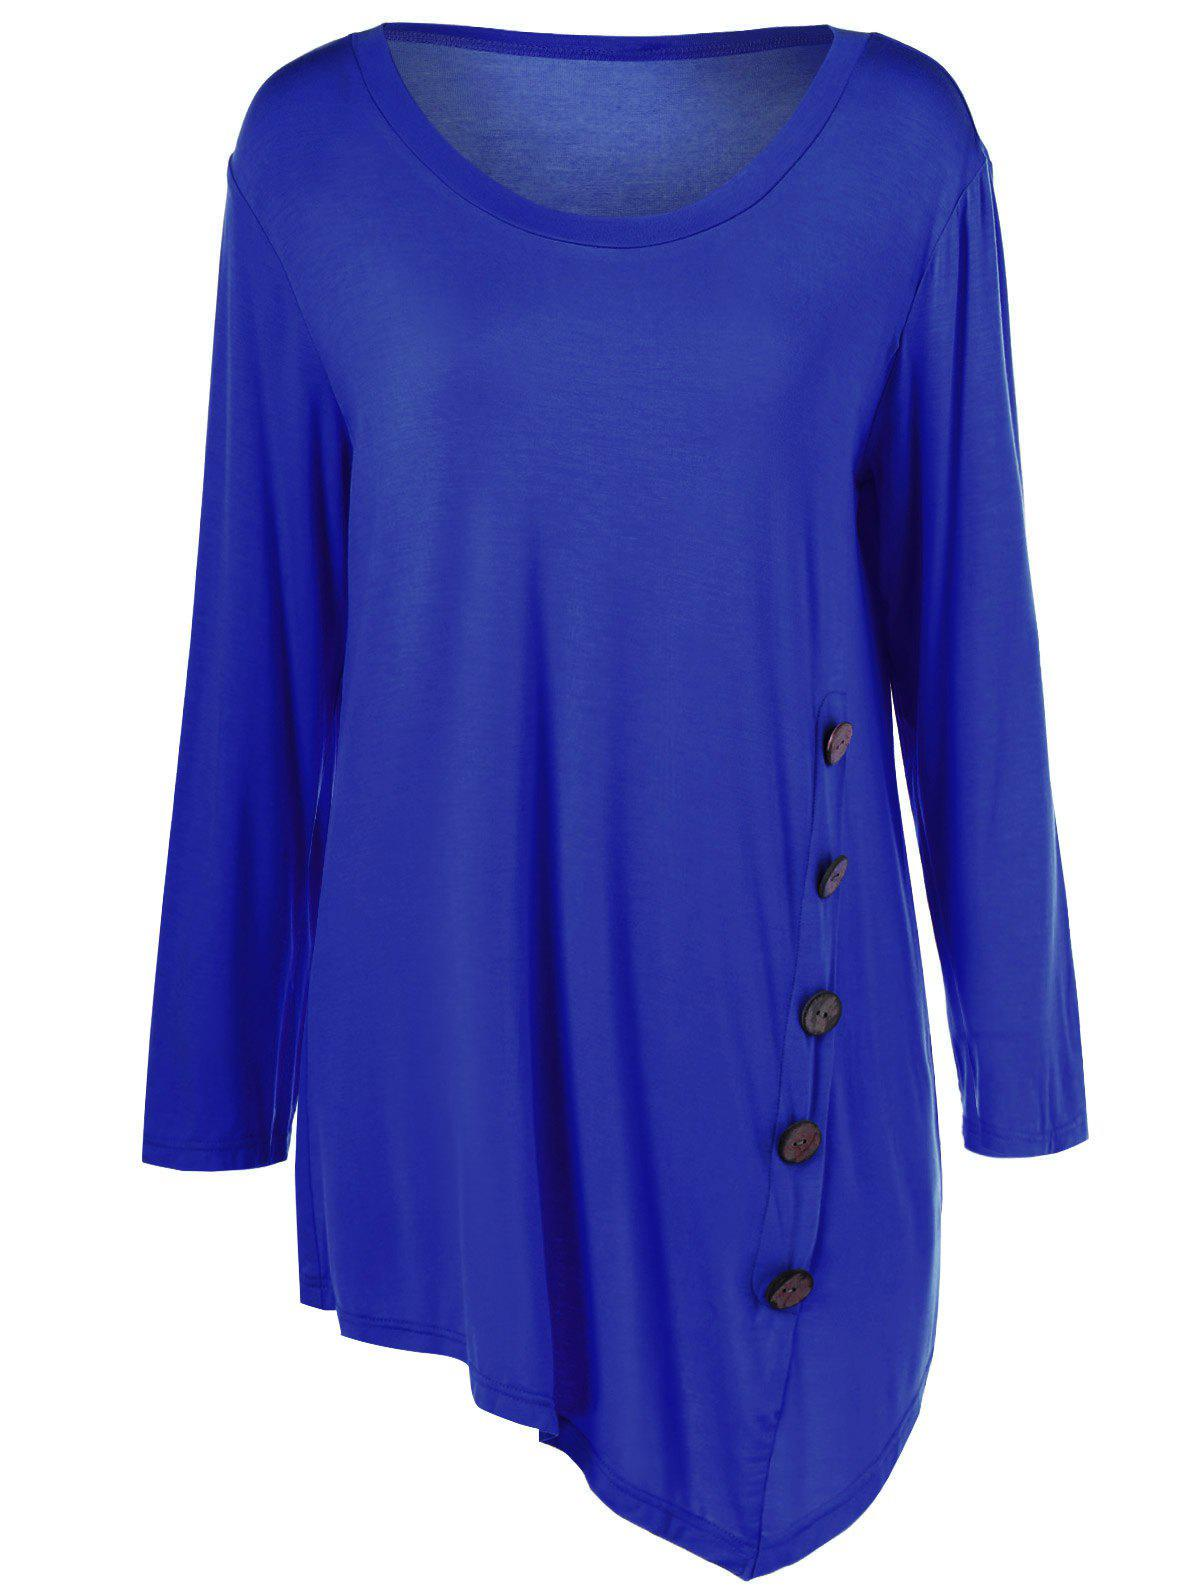 Plus Size Inclined Buttoned Blouse - BLUE 2XL